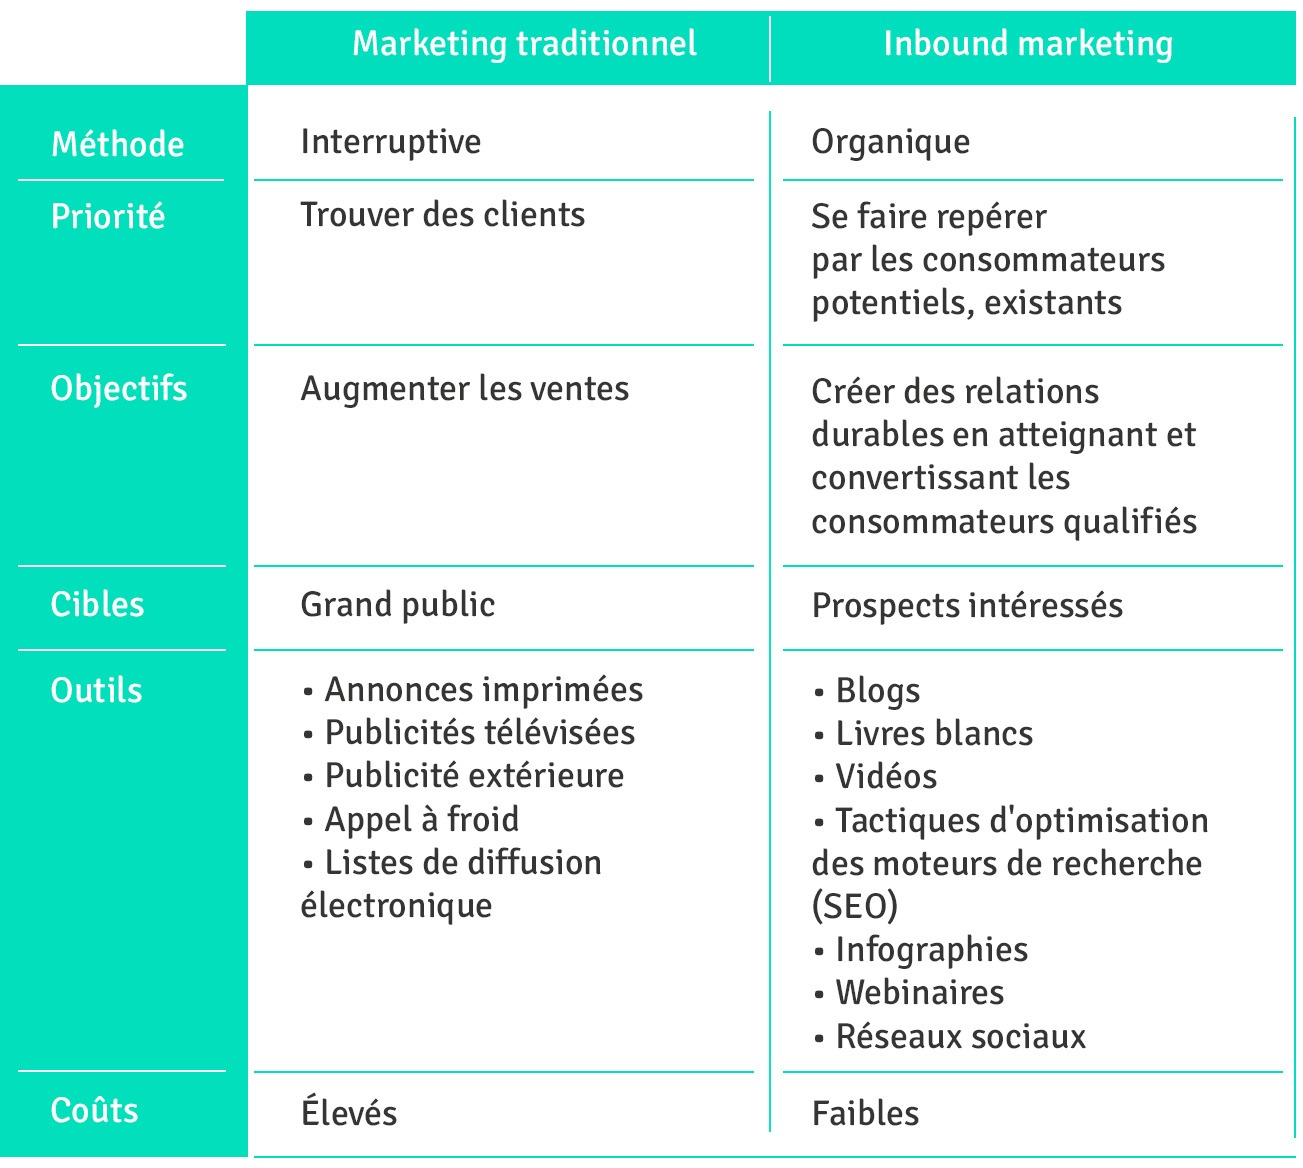 inbound marketing (méthode organique) versus marketing traditionnel (méthode interruptive)